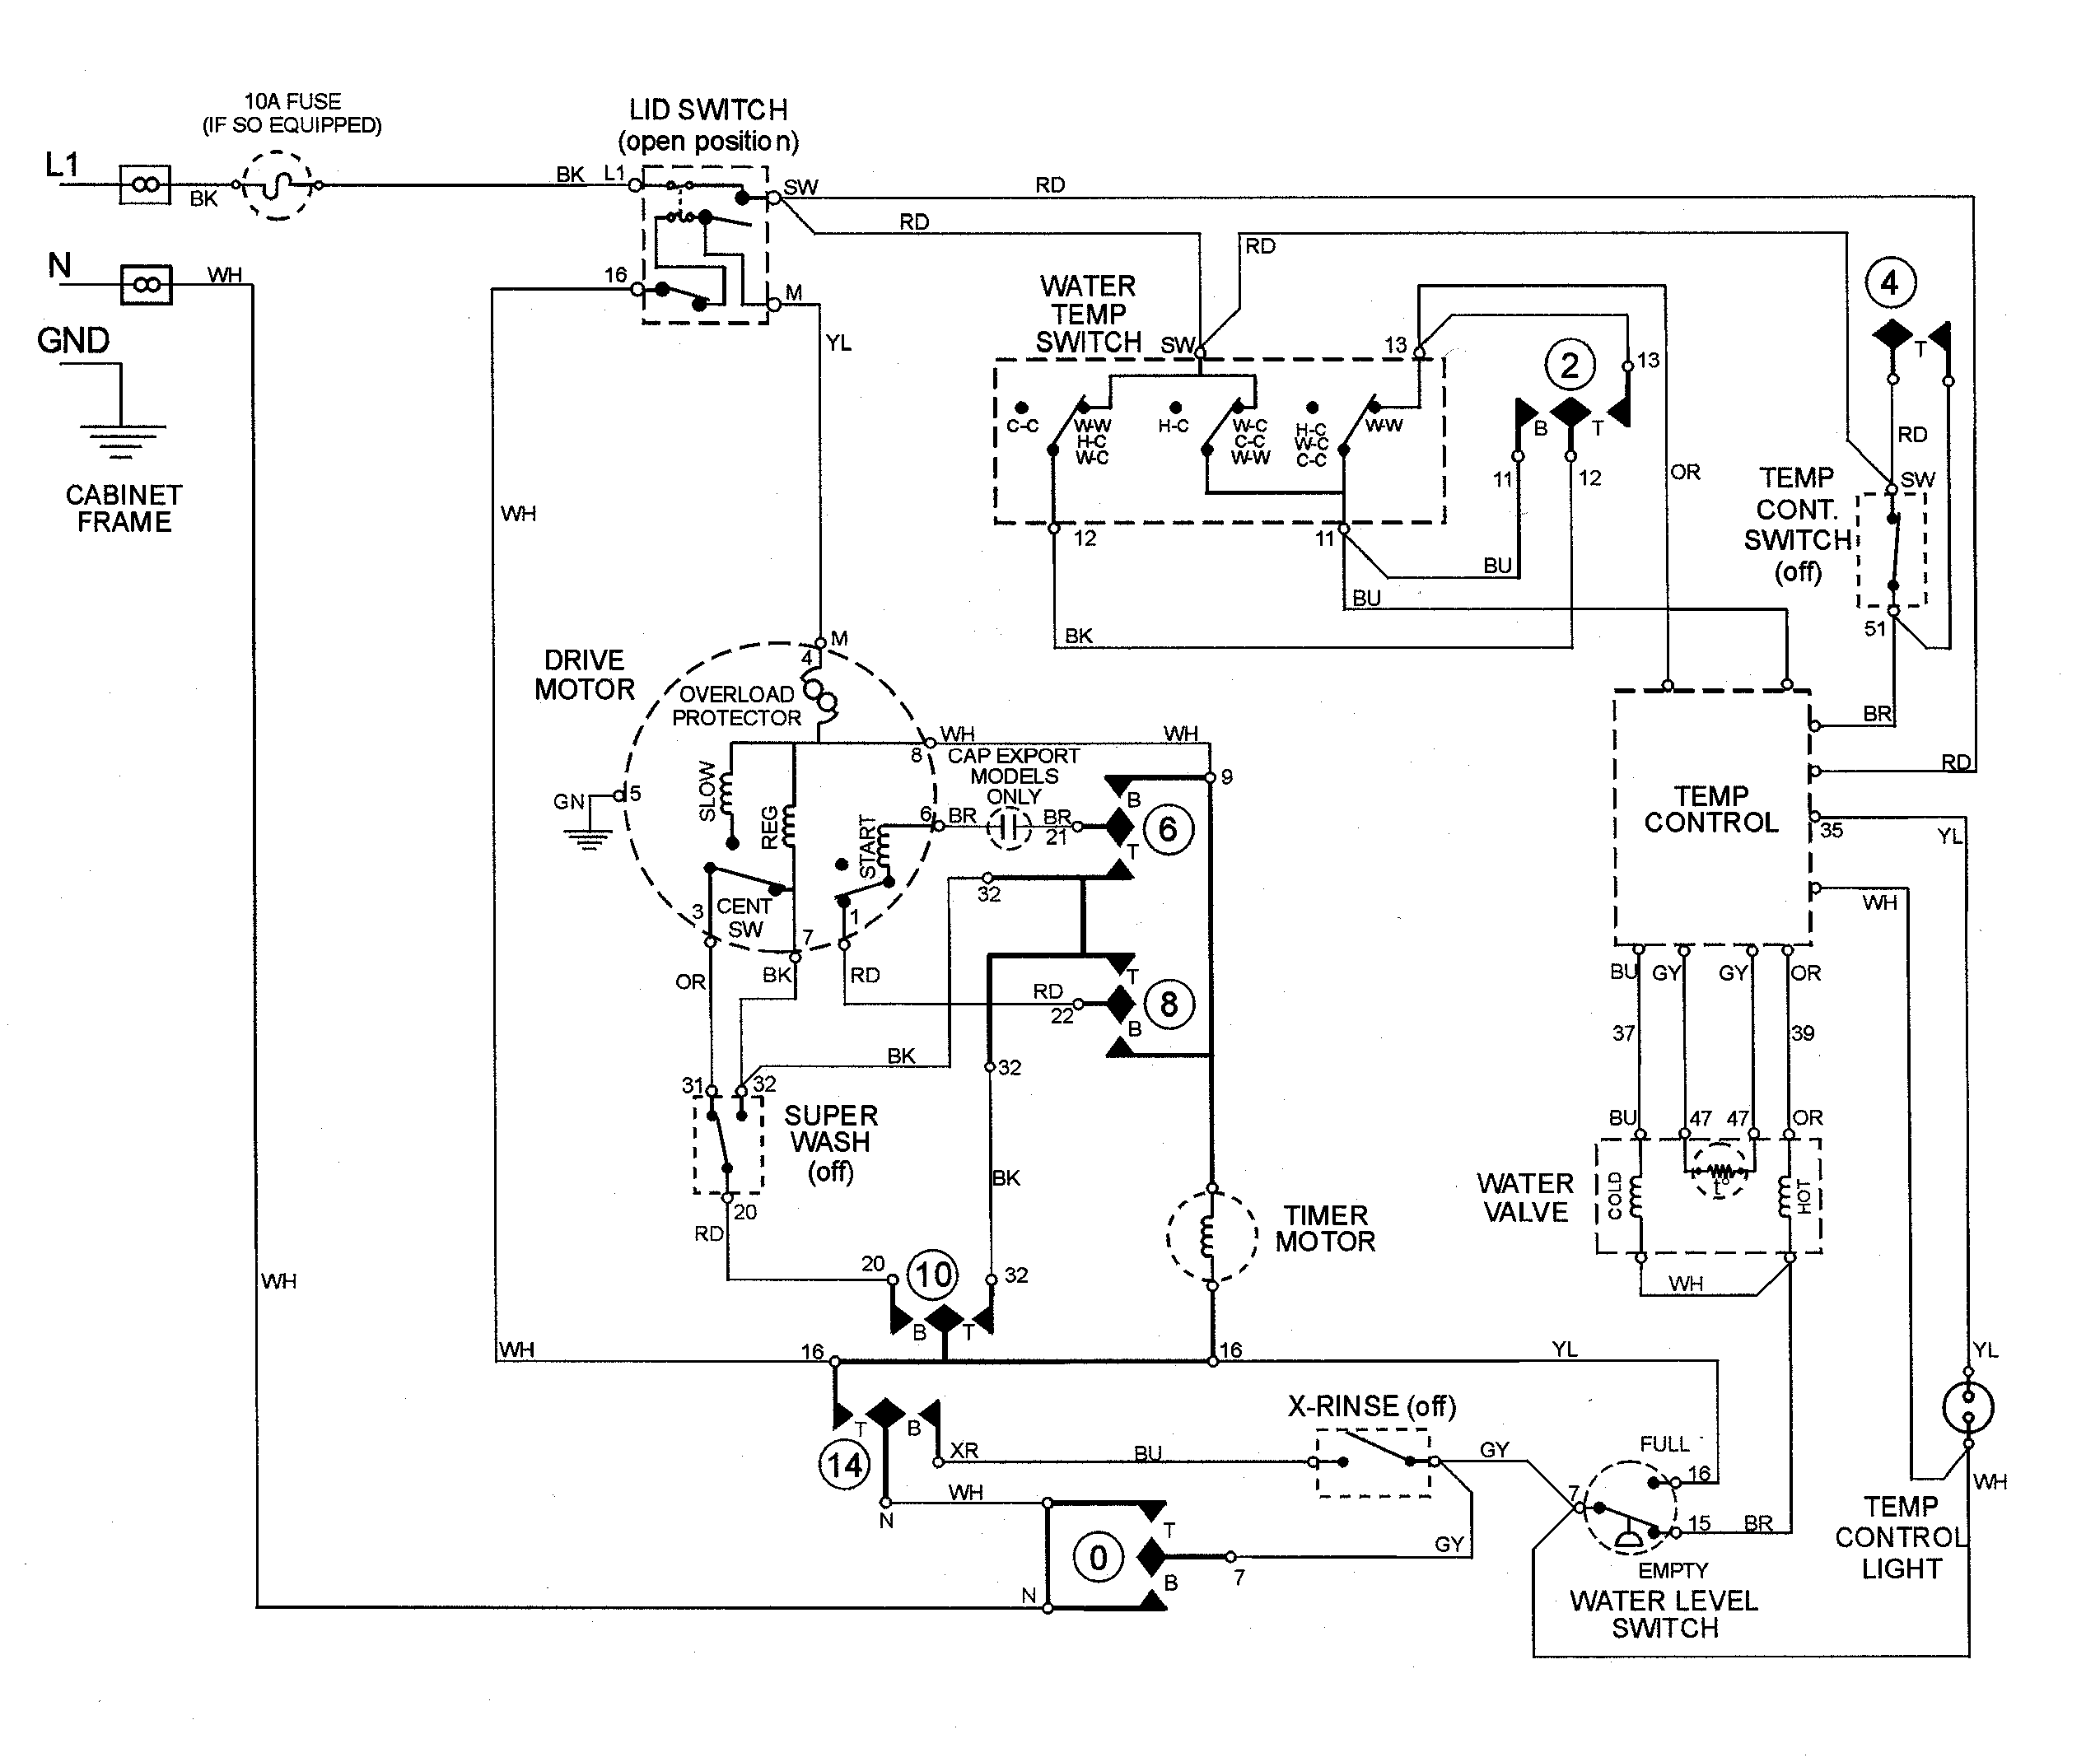 Unimac Wiring Diagram - Wiring Diagram Fascinating on hotpoint dryer schematic diagram, whirlpool dryer schematic diagram, amana dryer schematic diagram, ge dryer schematic diagram, maytag dryer schematic diagram,